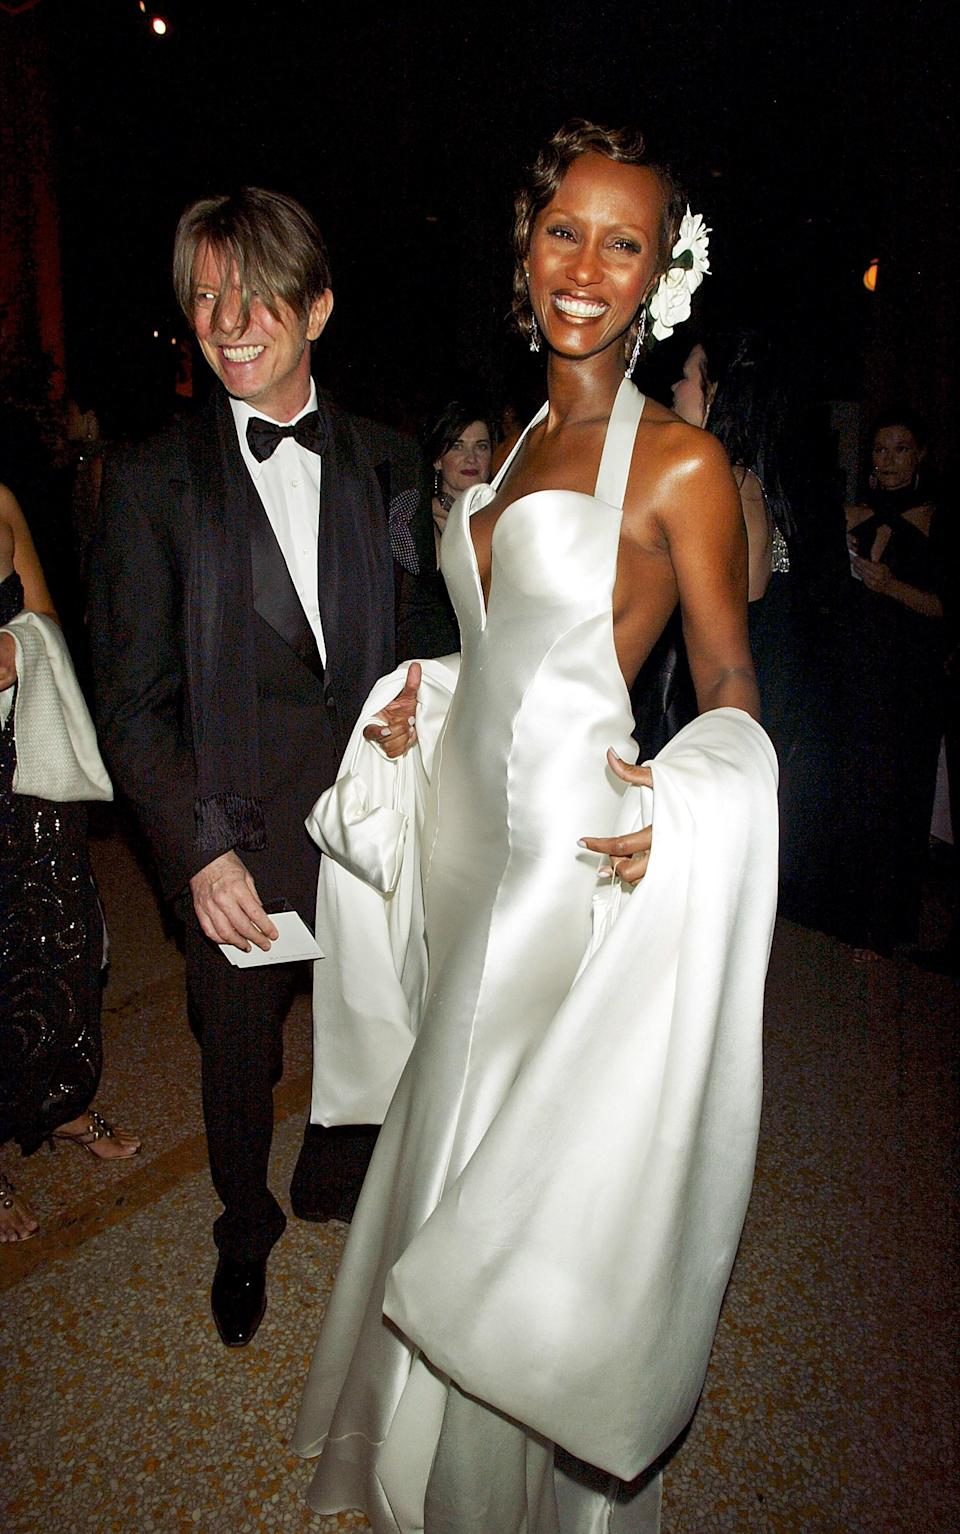 David Bowie and Iman in Calvin Klein